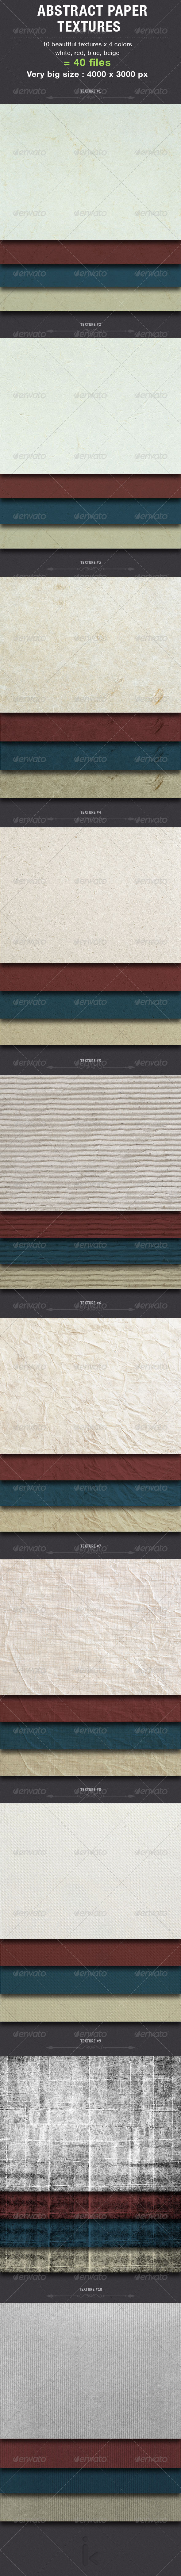 GraphicRiver Abstract Paper Textures 6395590